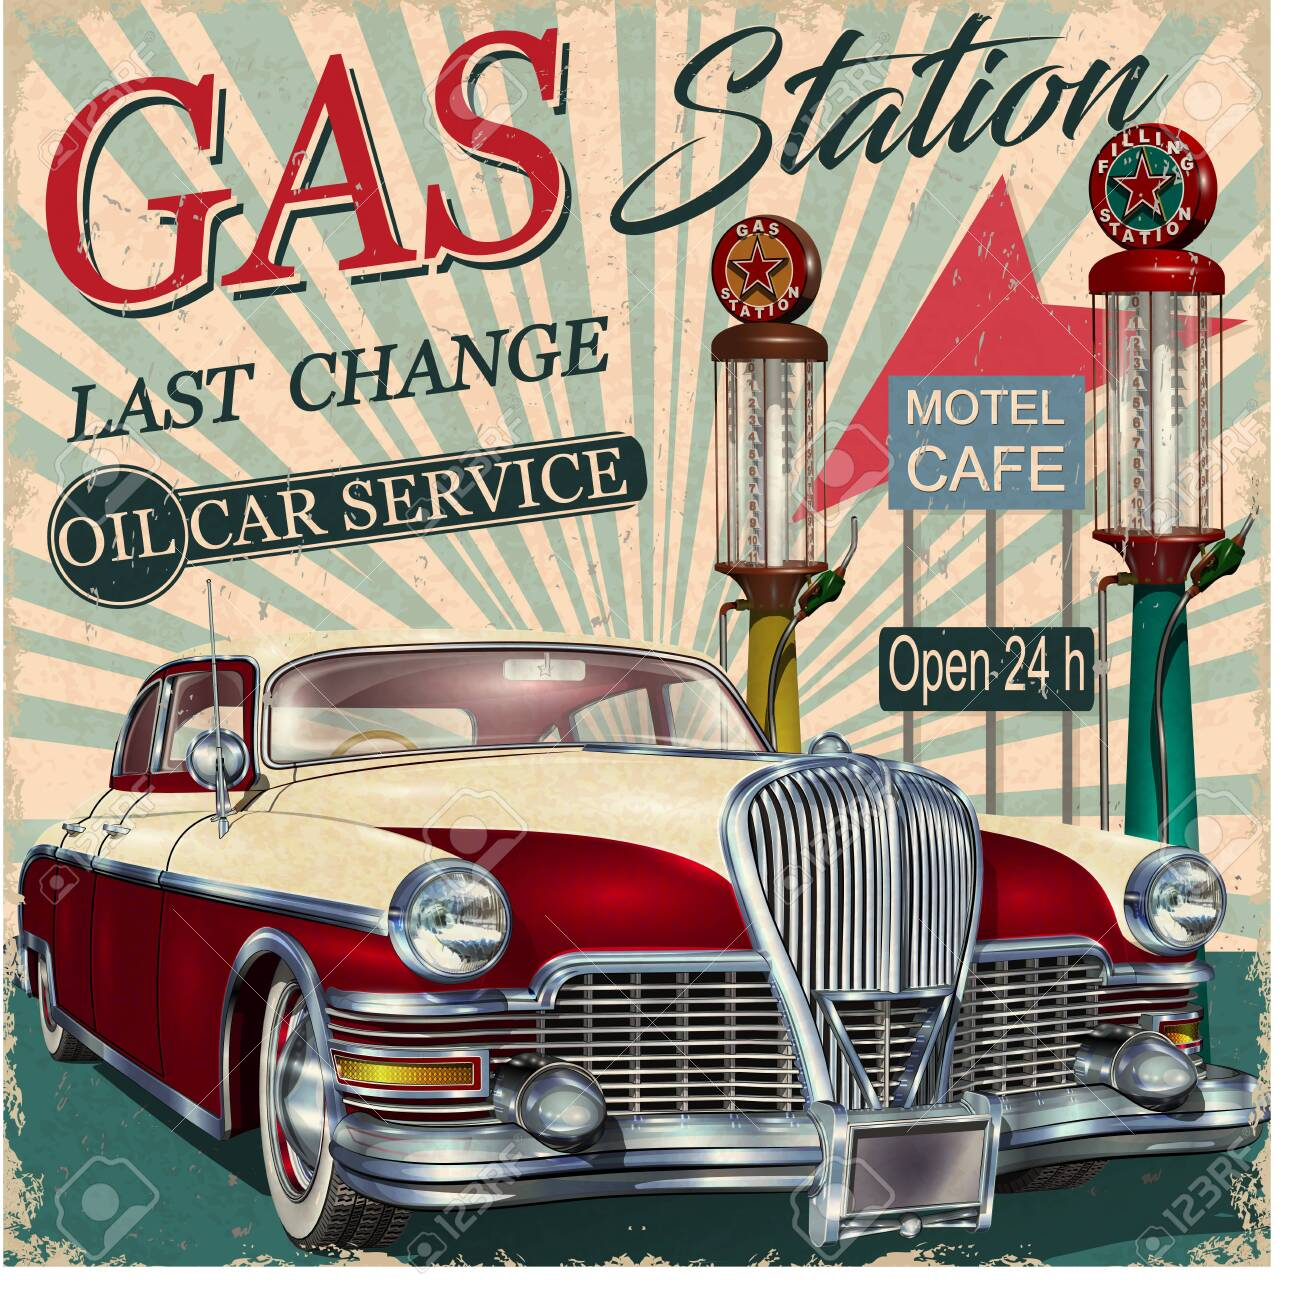 Gas station retro poster with vintage car. - 128473329